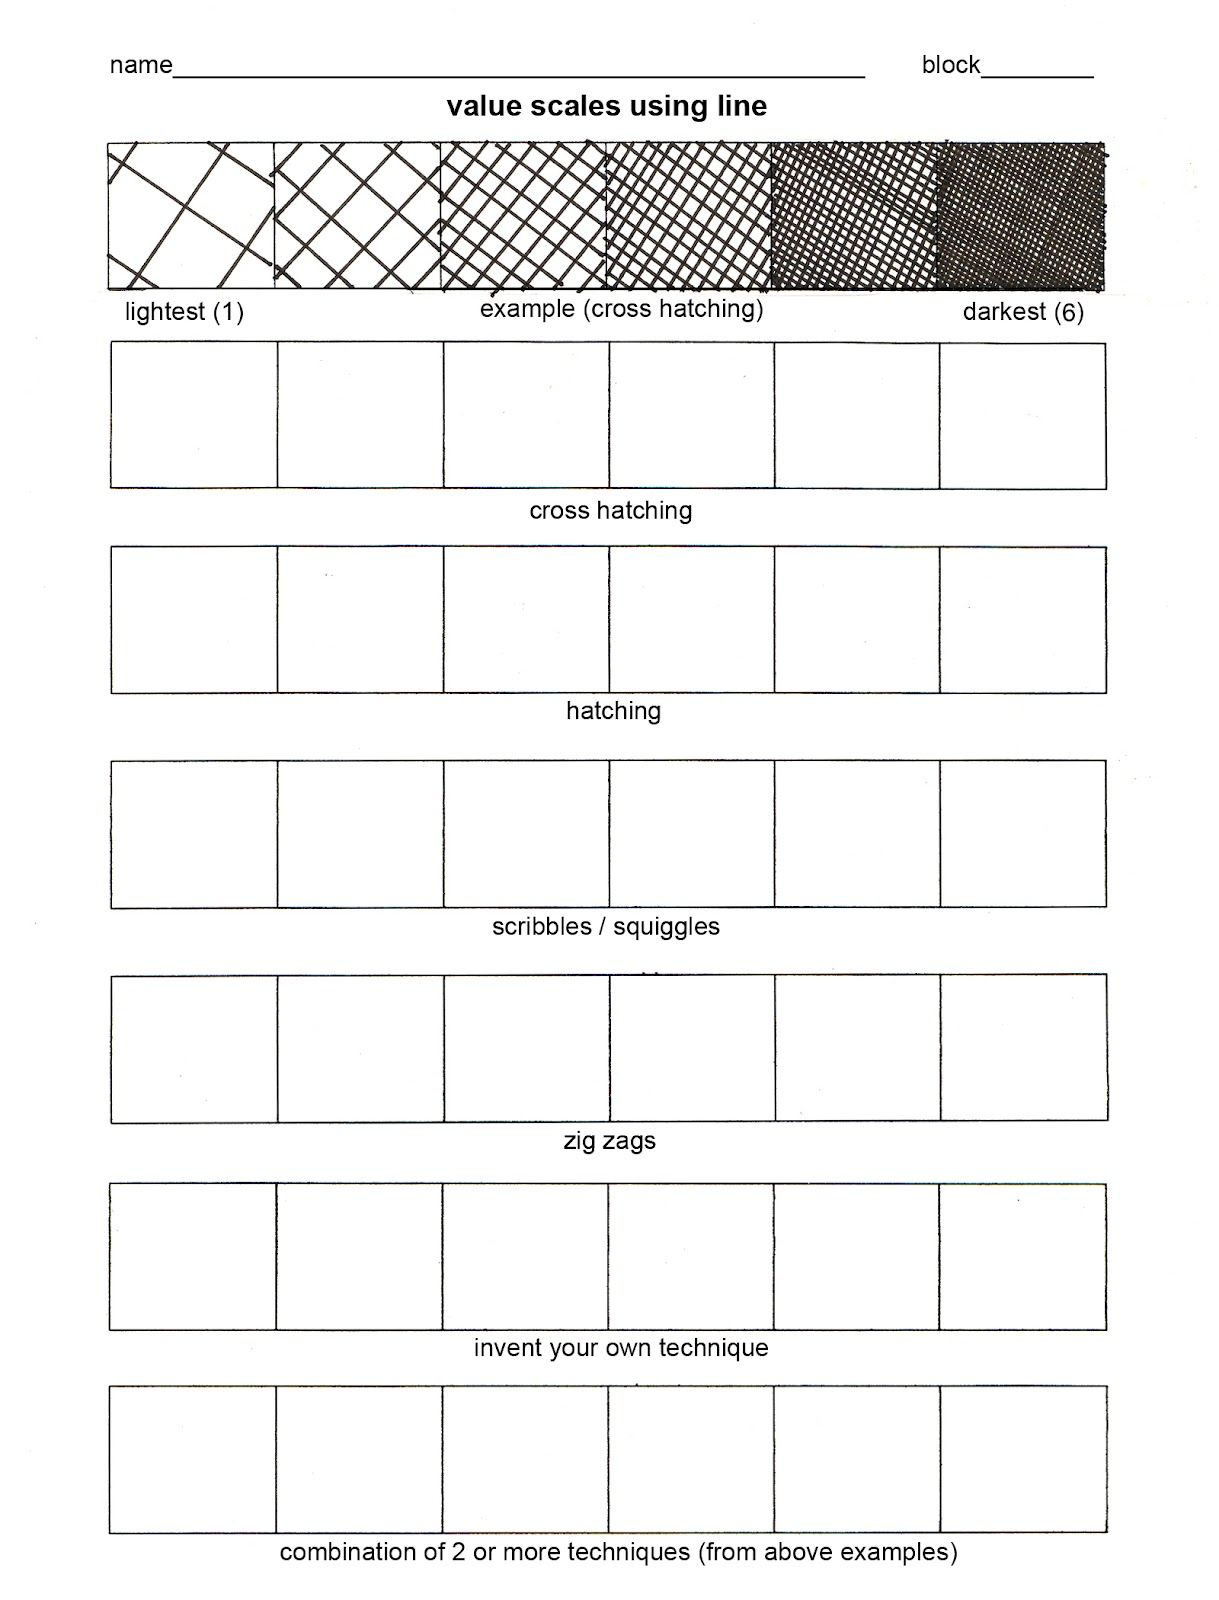 value worksheet 45rpmdesigns.blogspot.com http://45rpmdesigns ...